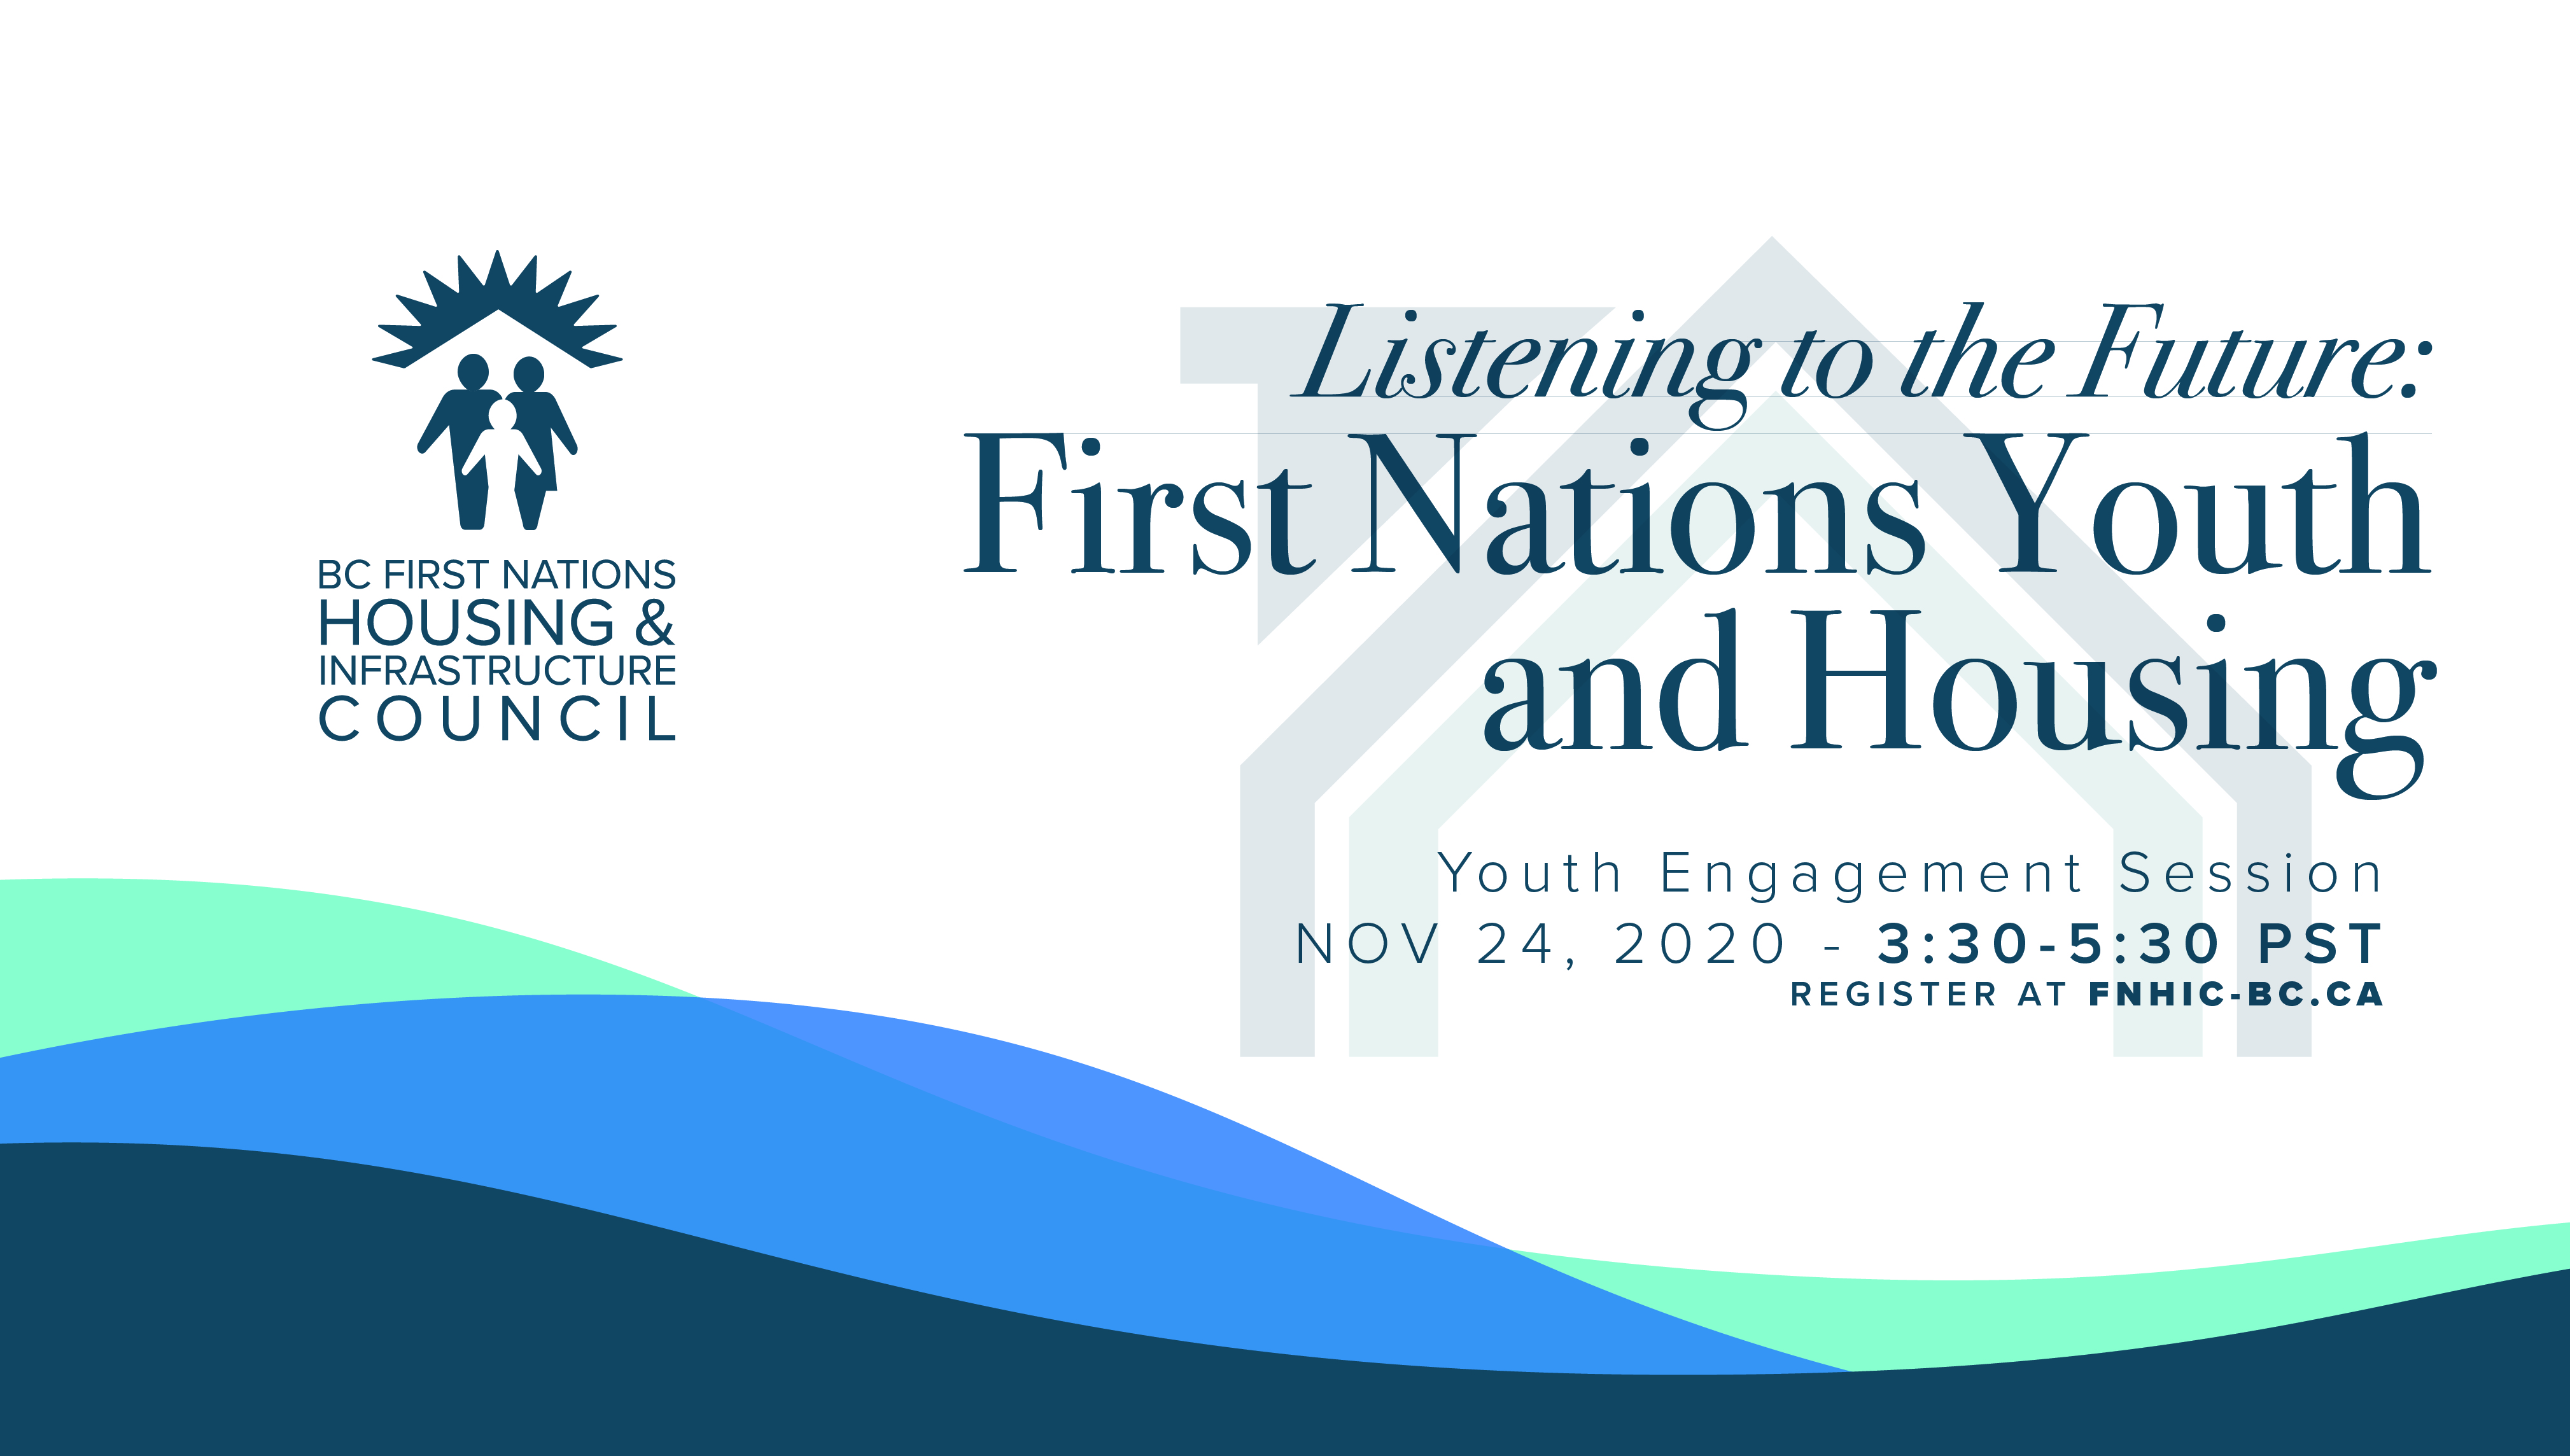 First Nations Youth and Housing